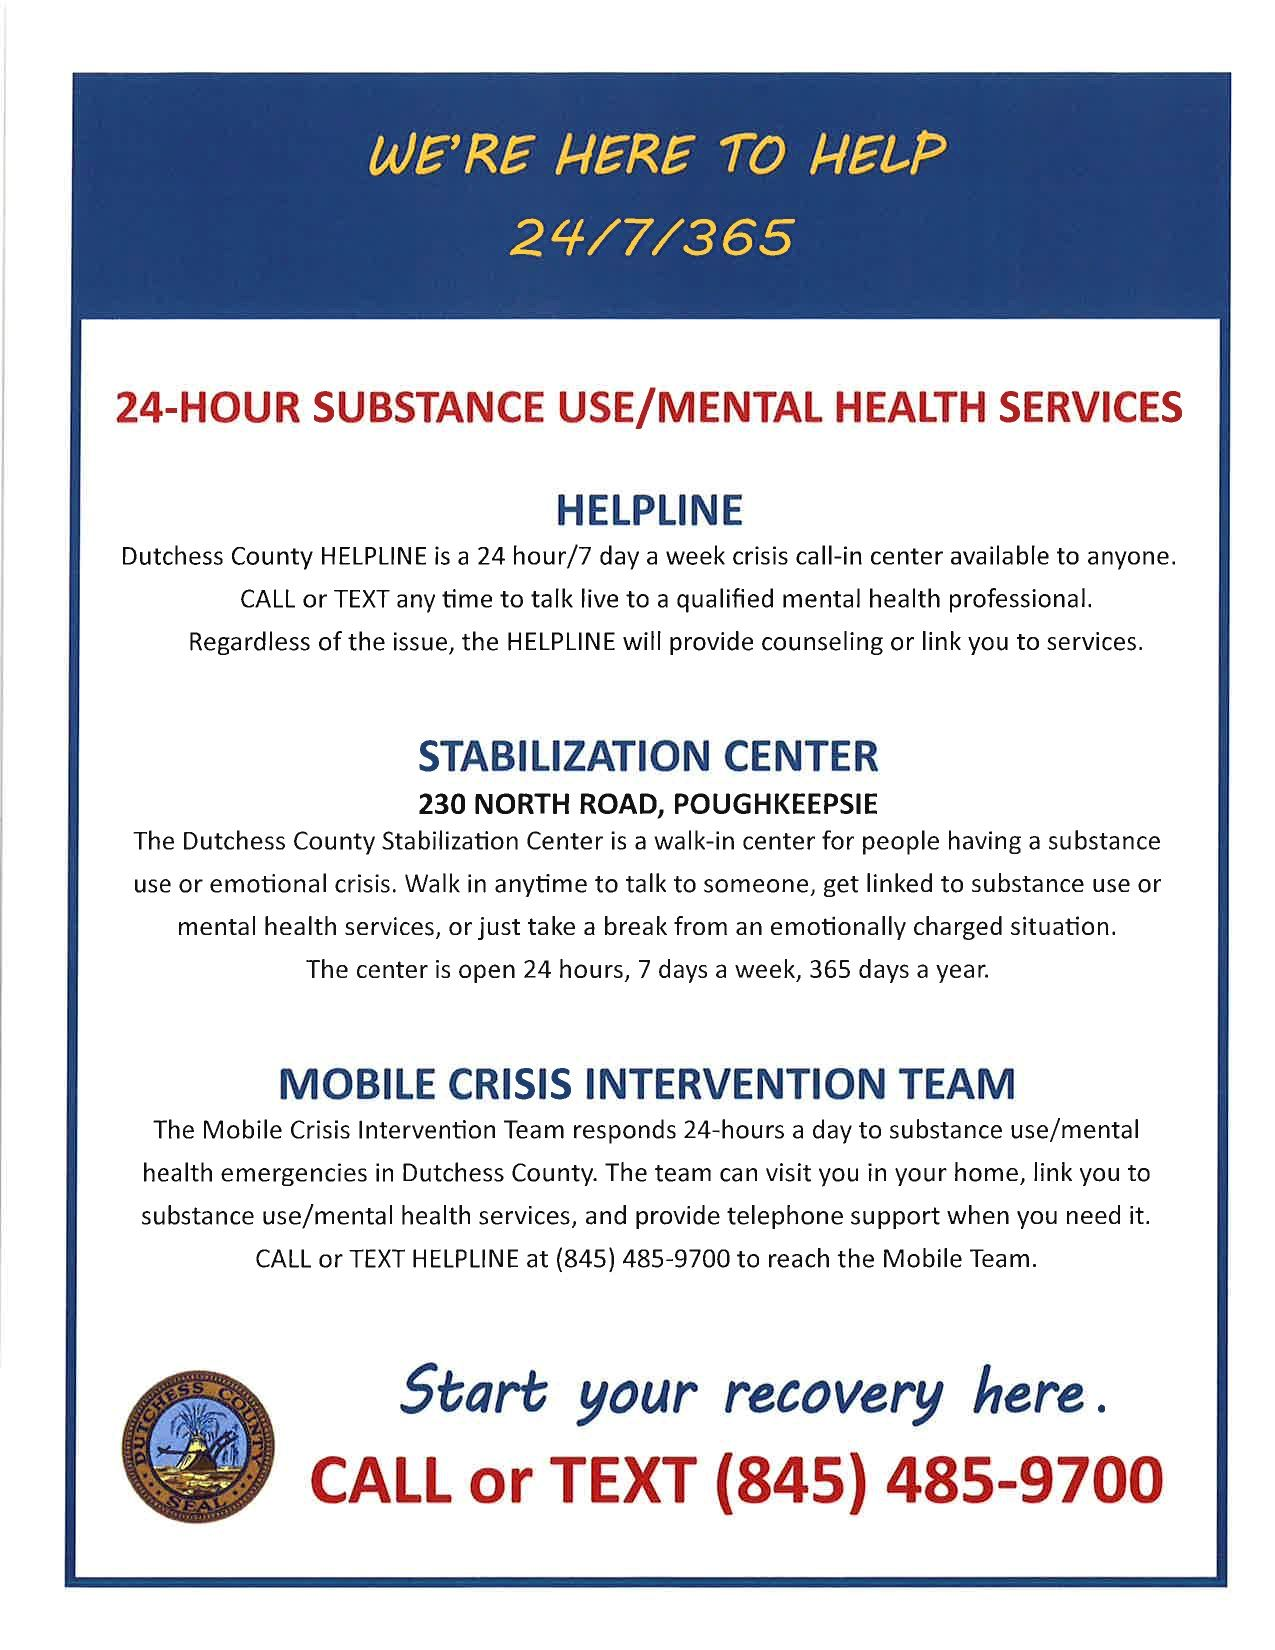 24-Hour Substance Use and Mental Health Services Flyer